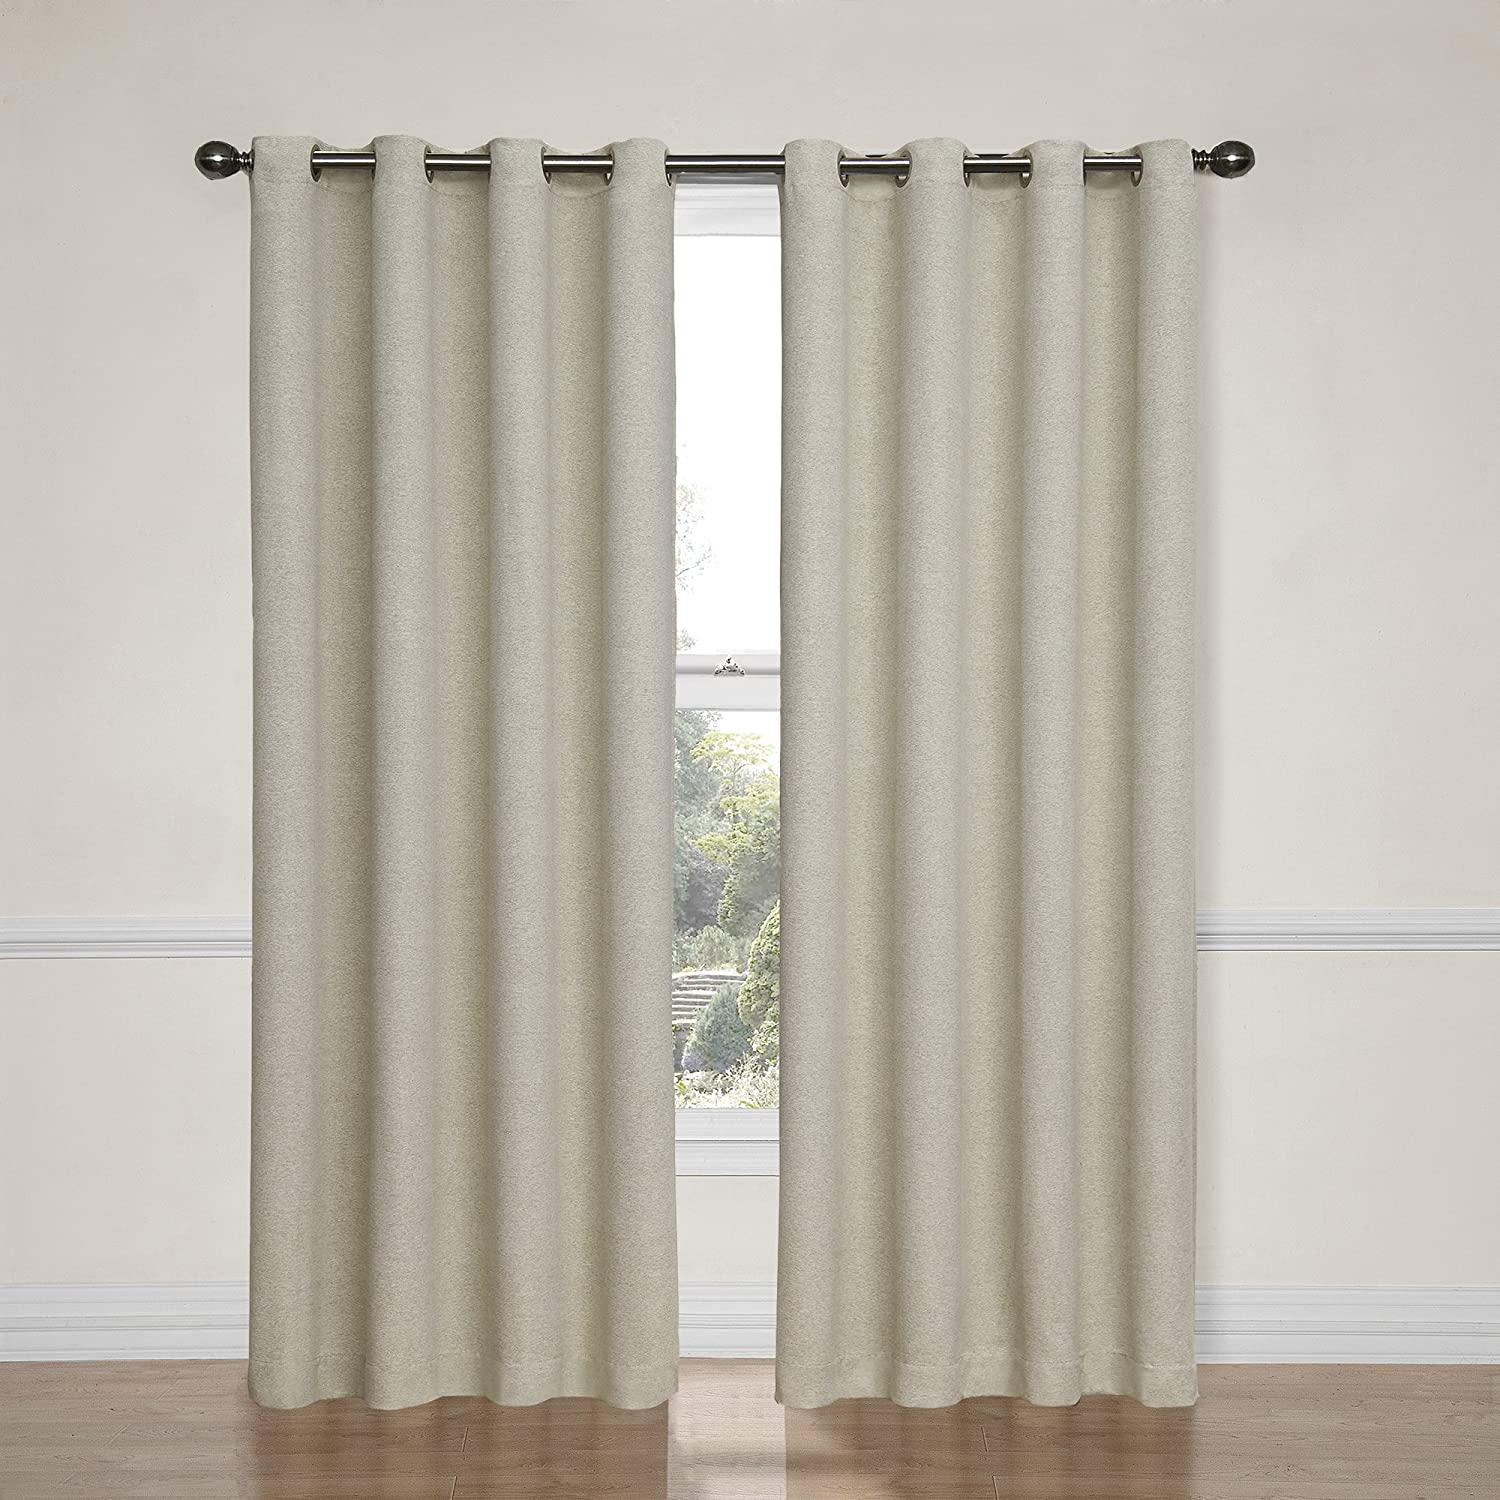 peice curtains panels ivory curtain voile swags o black drop ebay set itm